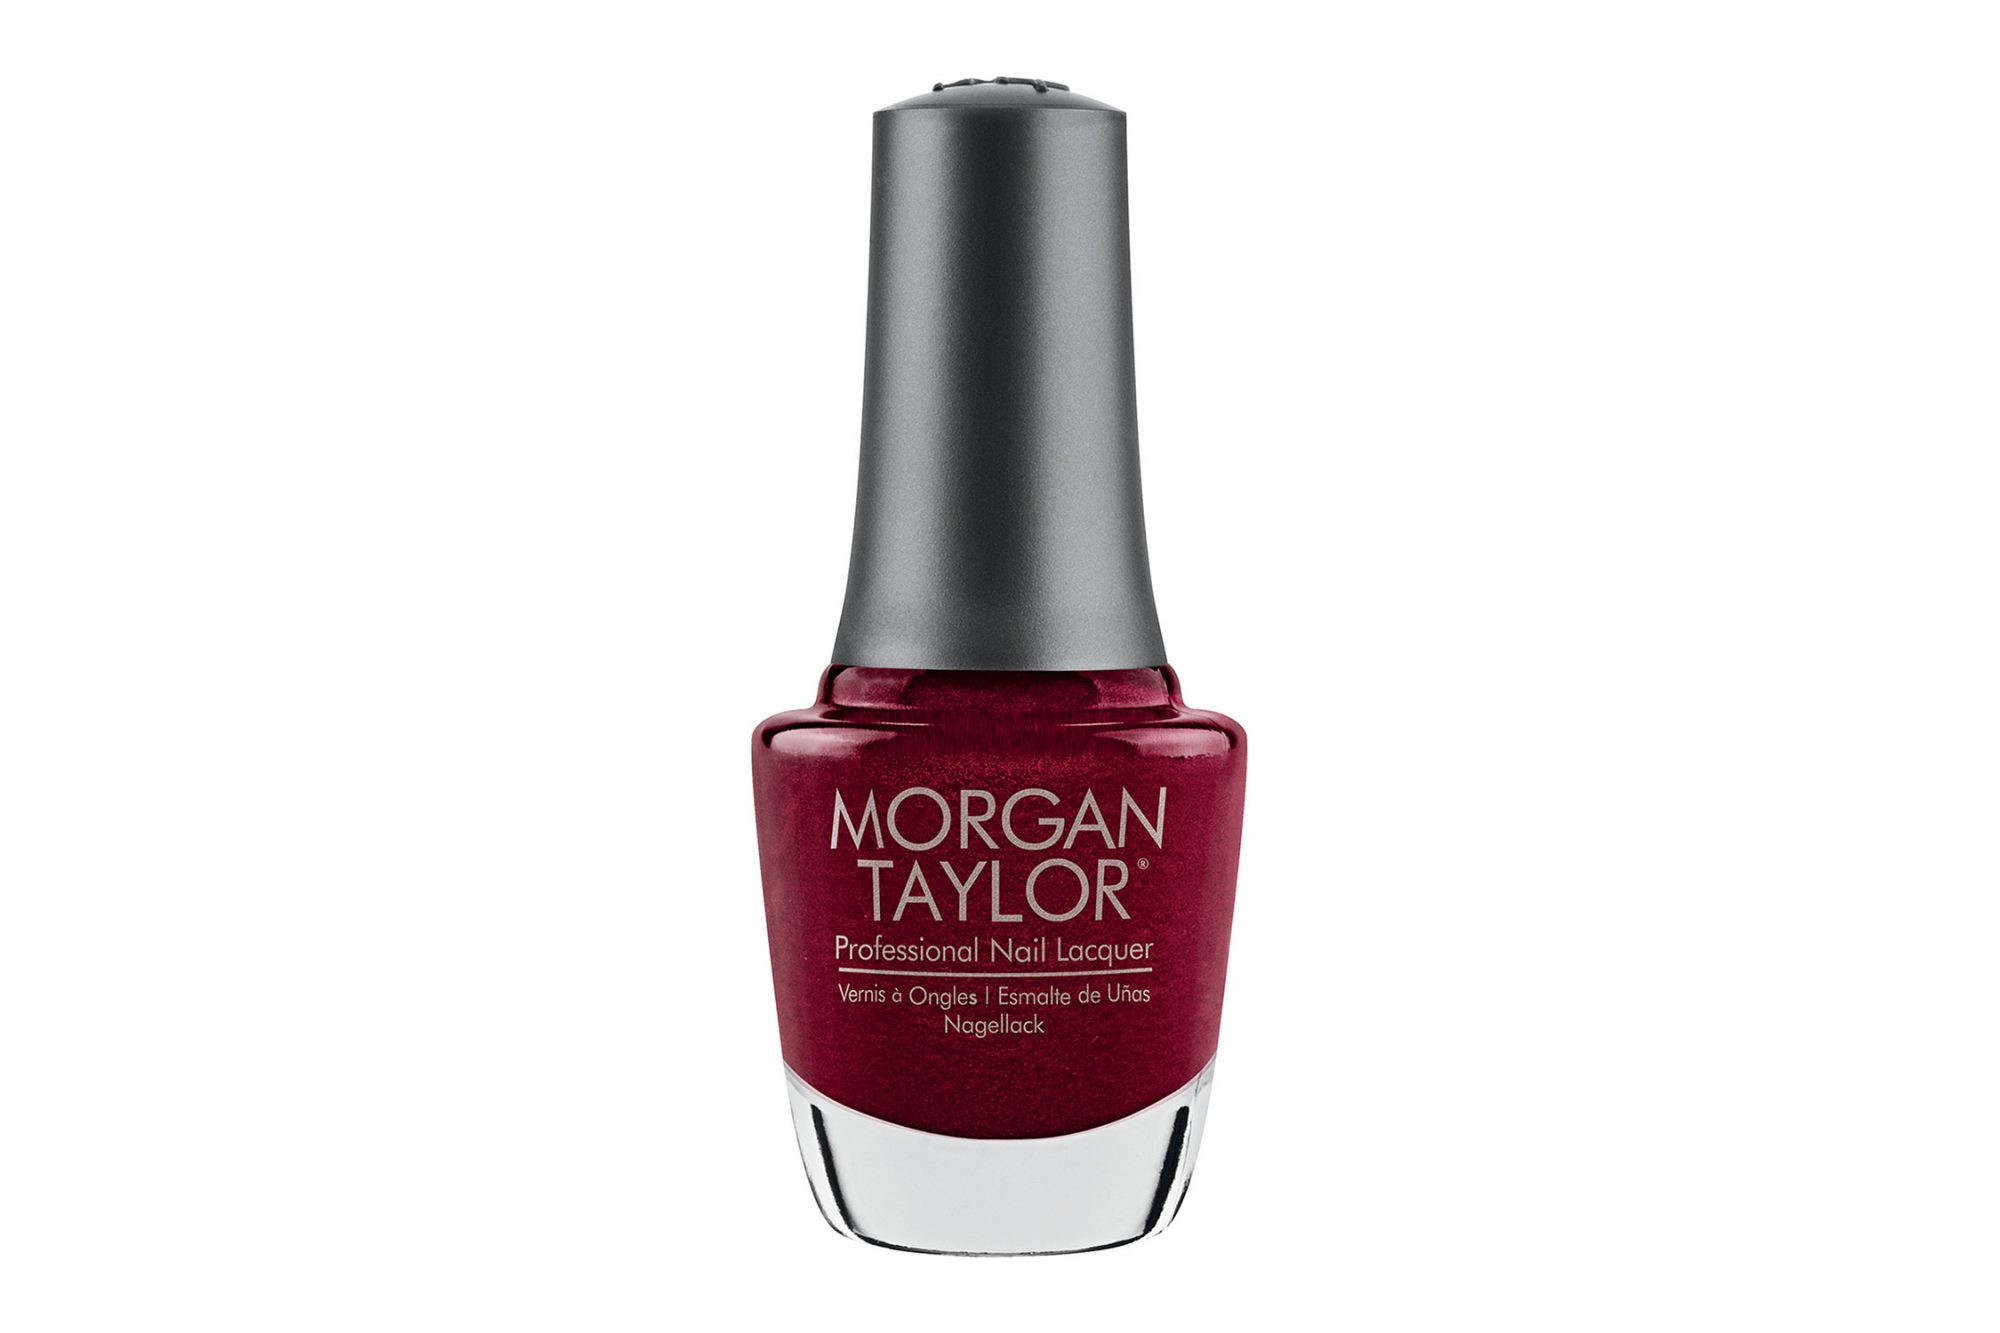 Morgan Taylor The Beauty and The Beast 2017 Collection